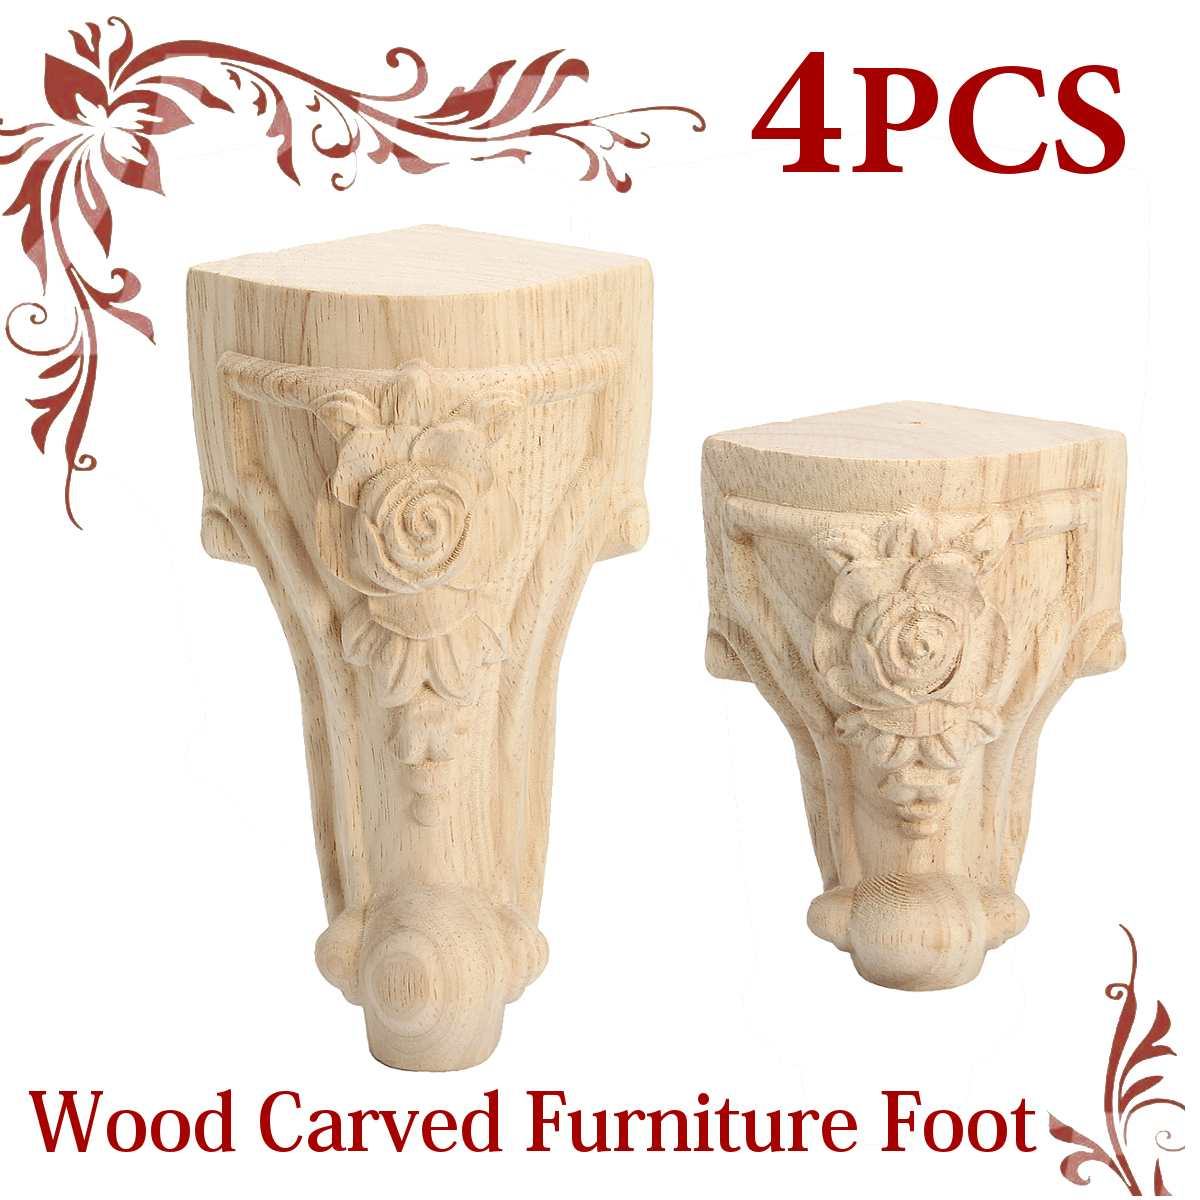 4Pcs/set 15x6cm/10x6cm European Furniture Foot Carved Wood TV Cabinet Seat Foot Bathroom Cabinet Legs